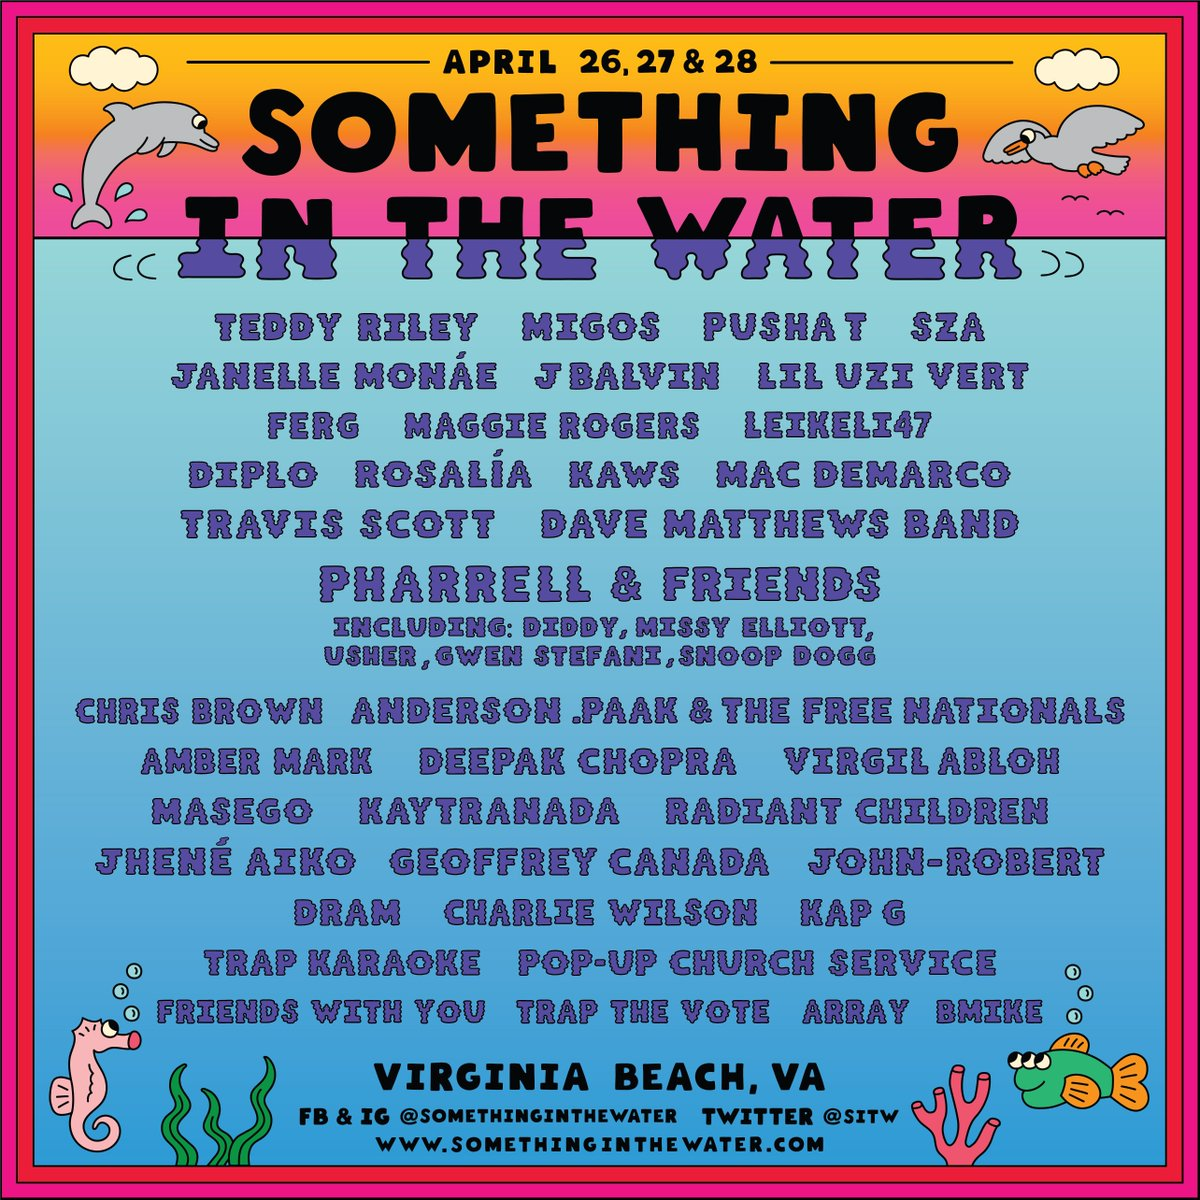 RT @sitw: New lineup alert❗???? Don't miss #SITWfest. Limited passes still avail at https://t.co/hitO9dwpDD https://t.co/7LXv2gHFpJ